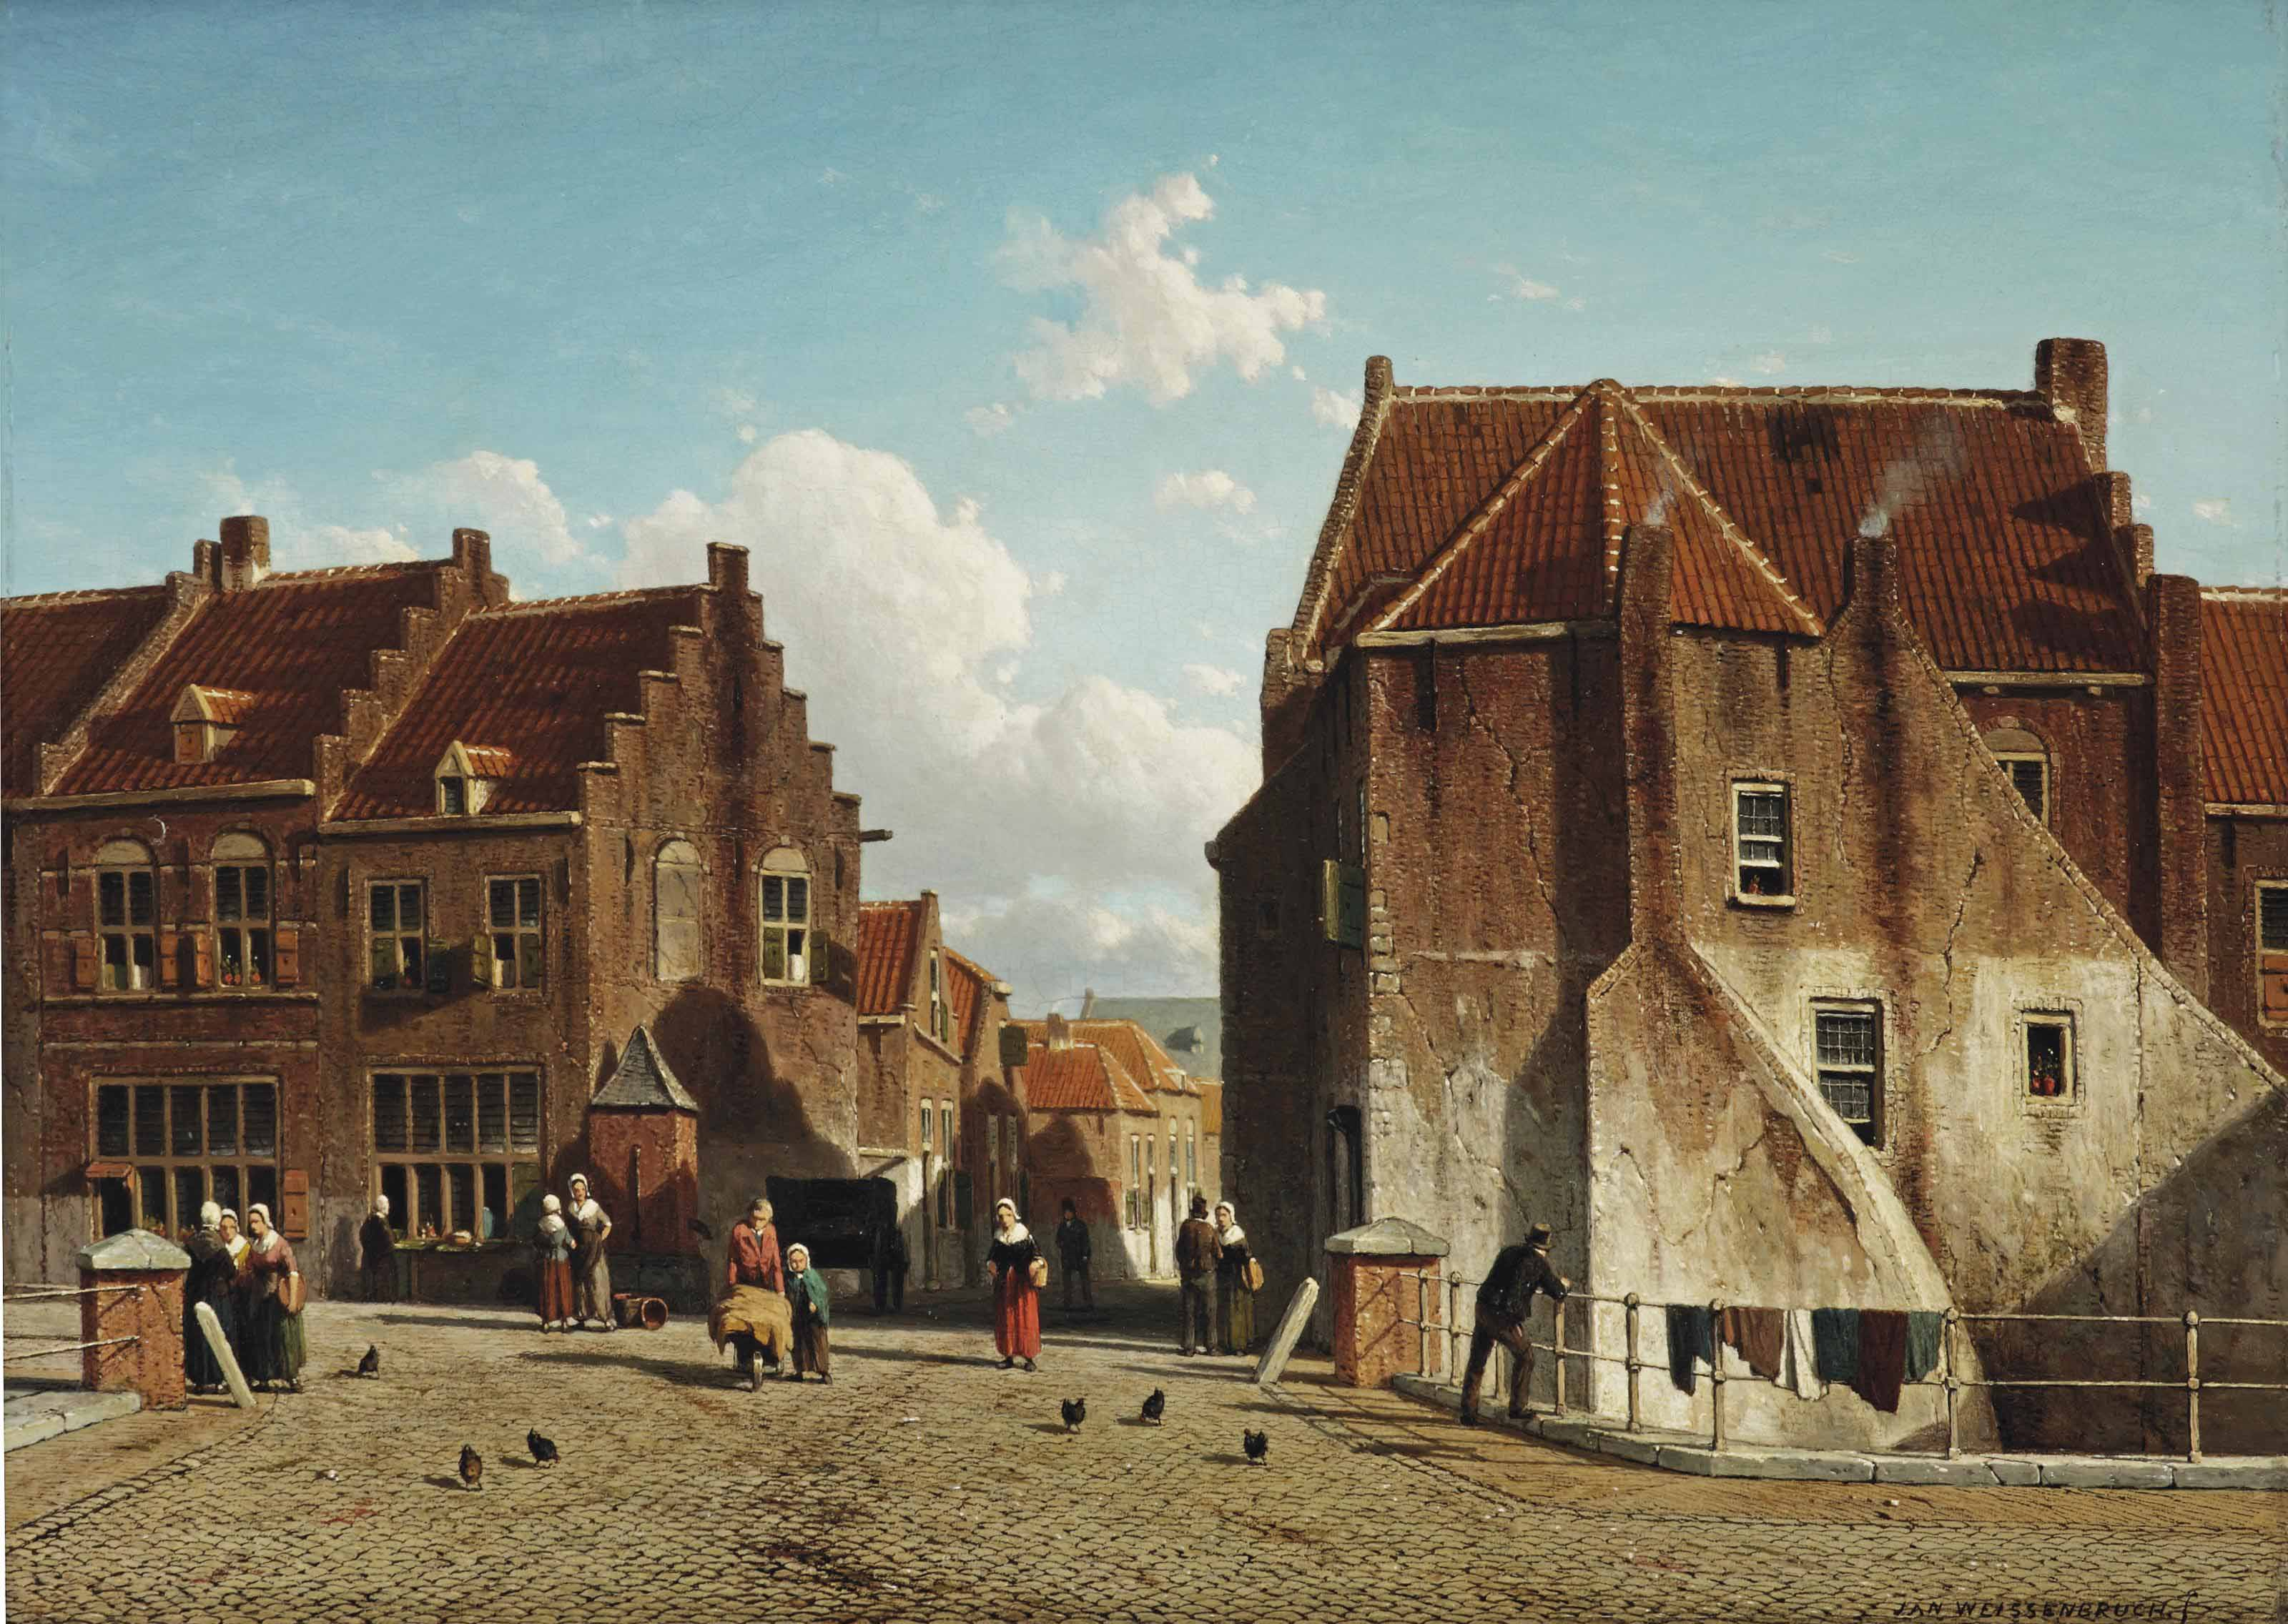 Kuilenburg: a market place with figures, Culemborg